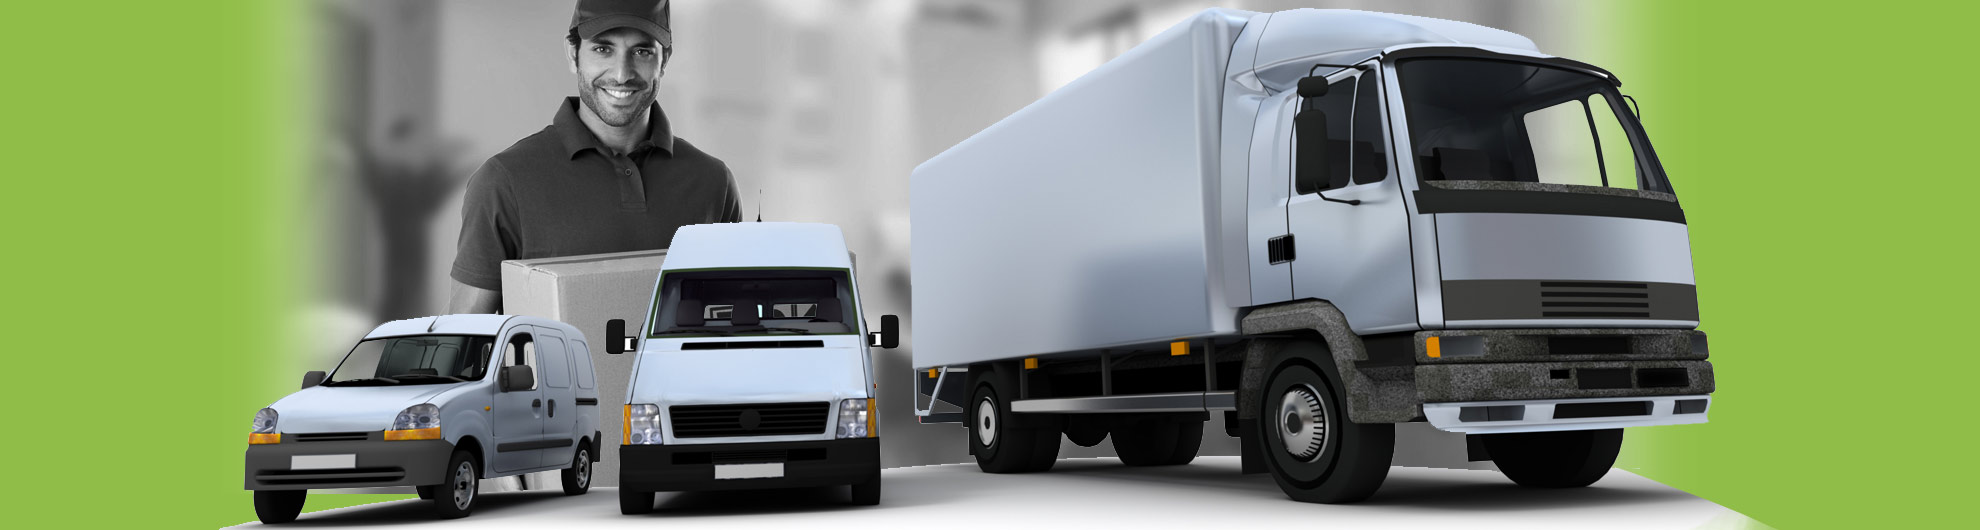 West Midlands  International Movers - Shipping Companies